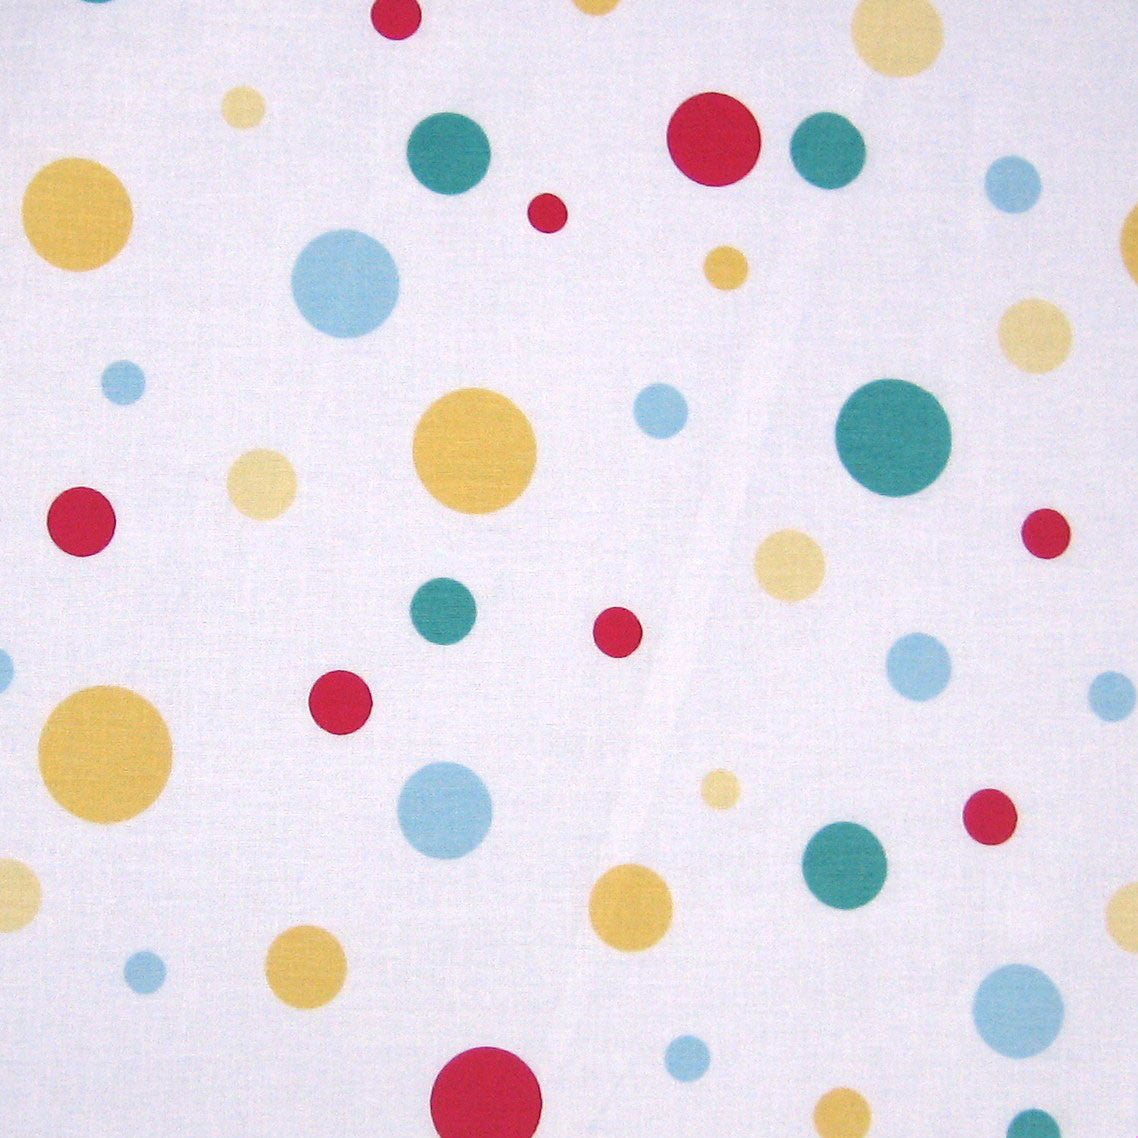 Blowing Bubbles Yellow Red Spots Cotton Durnishing Fabric by Clarke and Clarke (aka Globaltex)